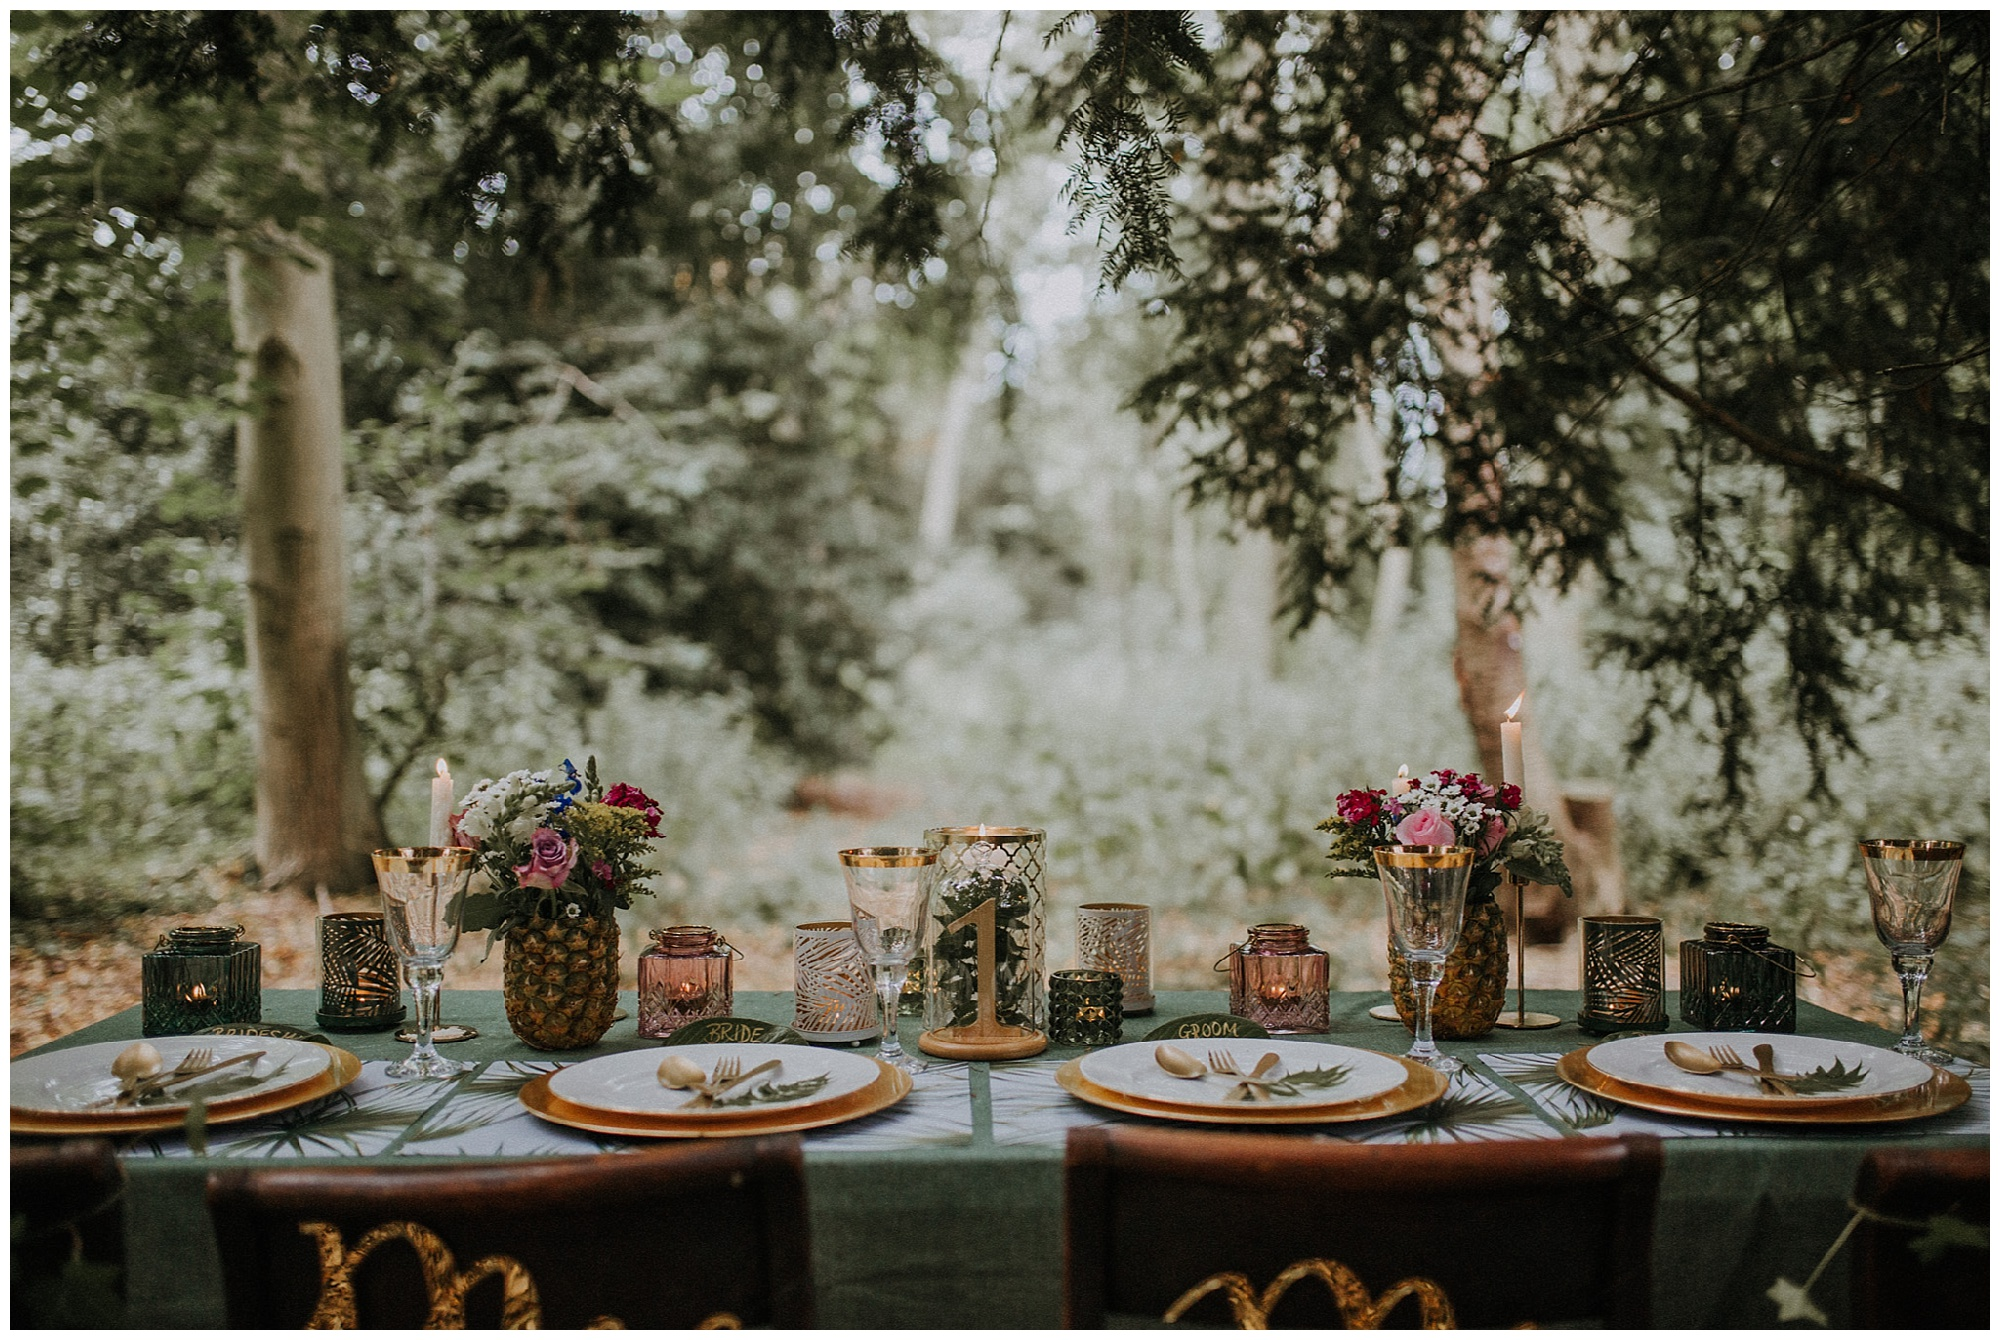 a wedding table setup in the woods